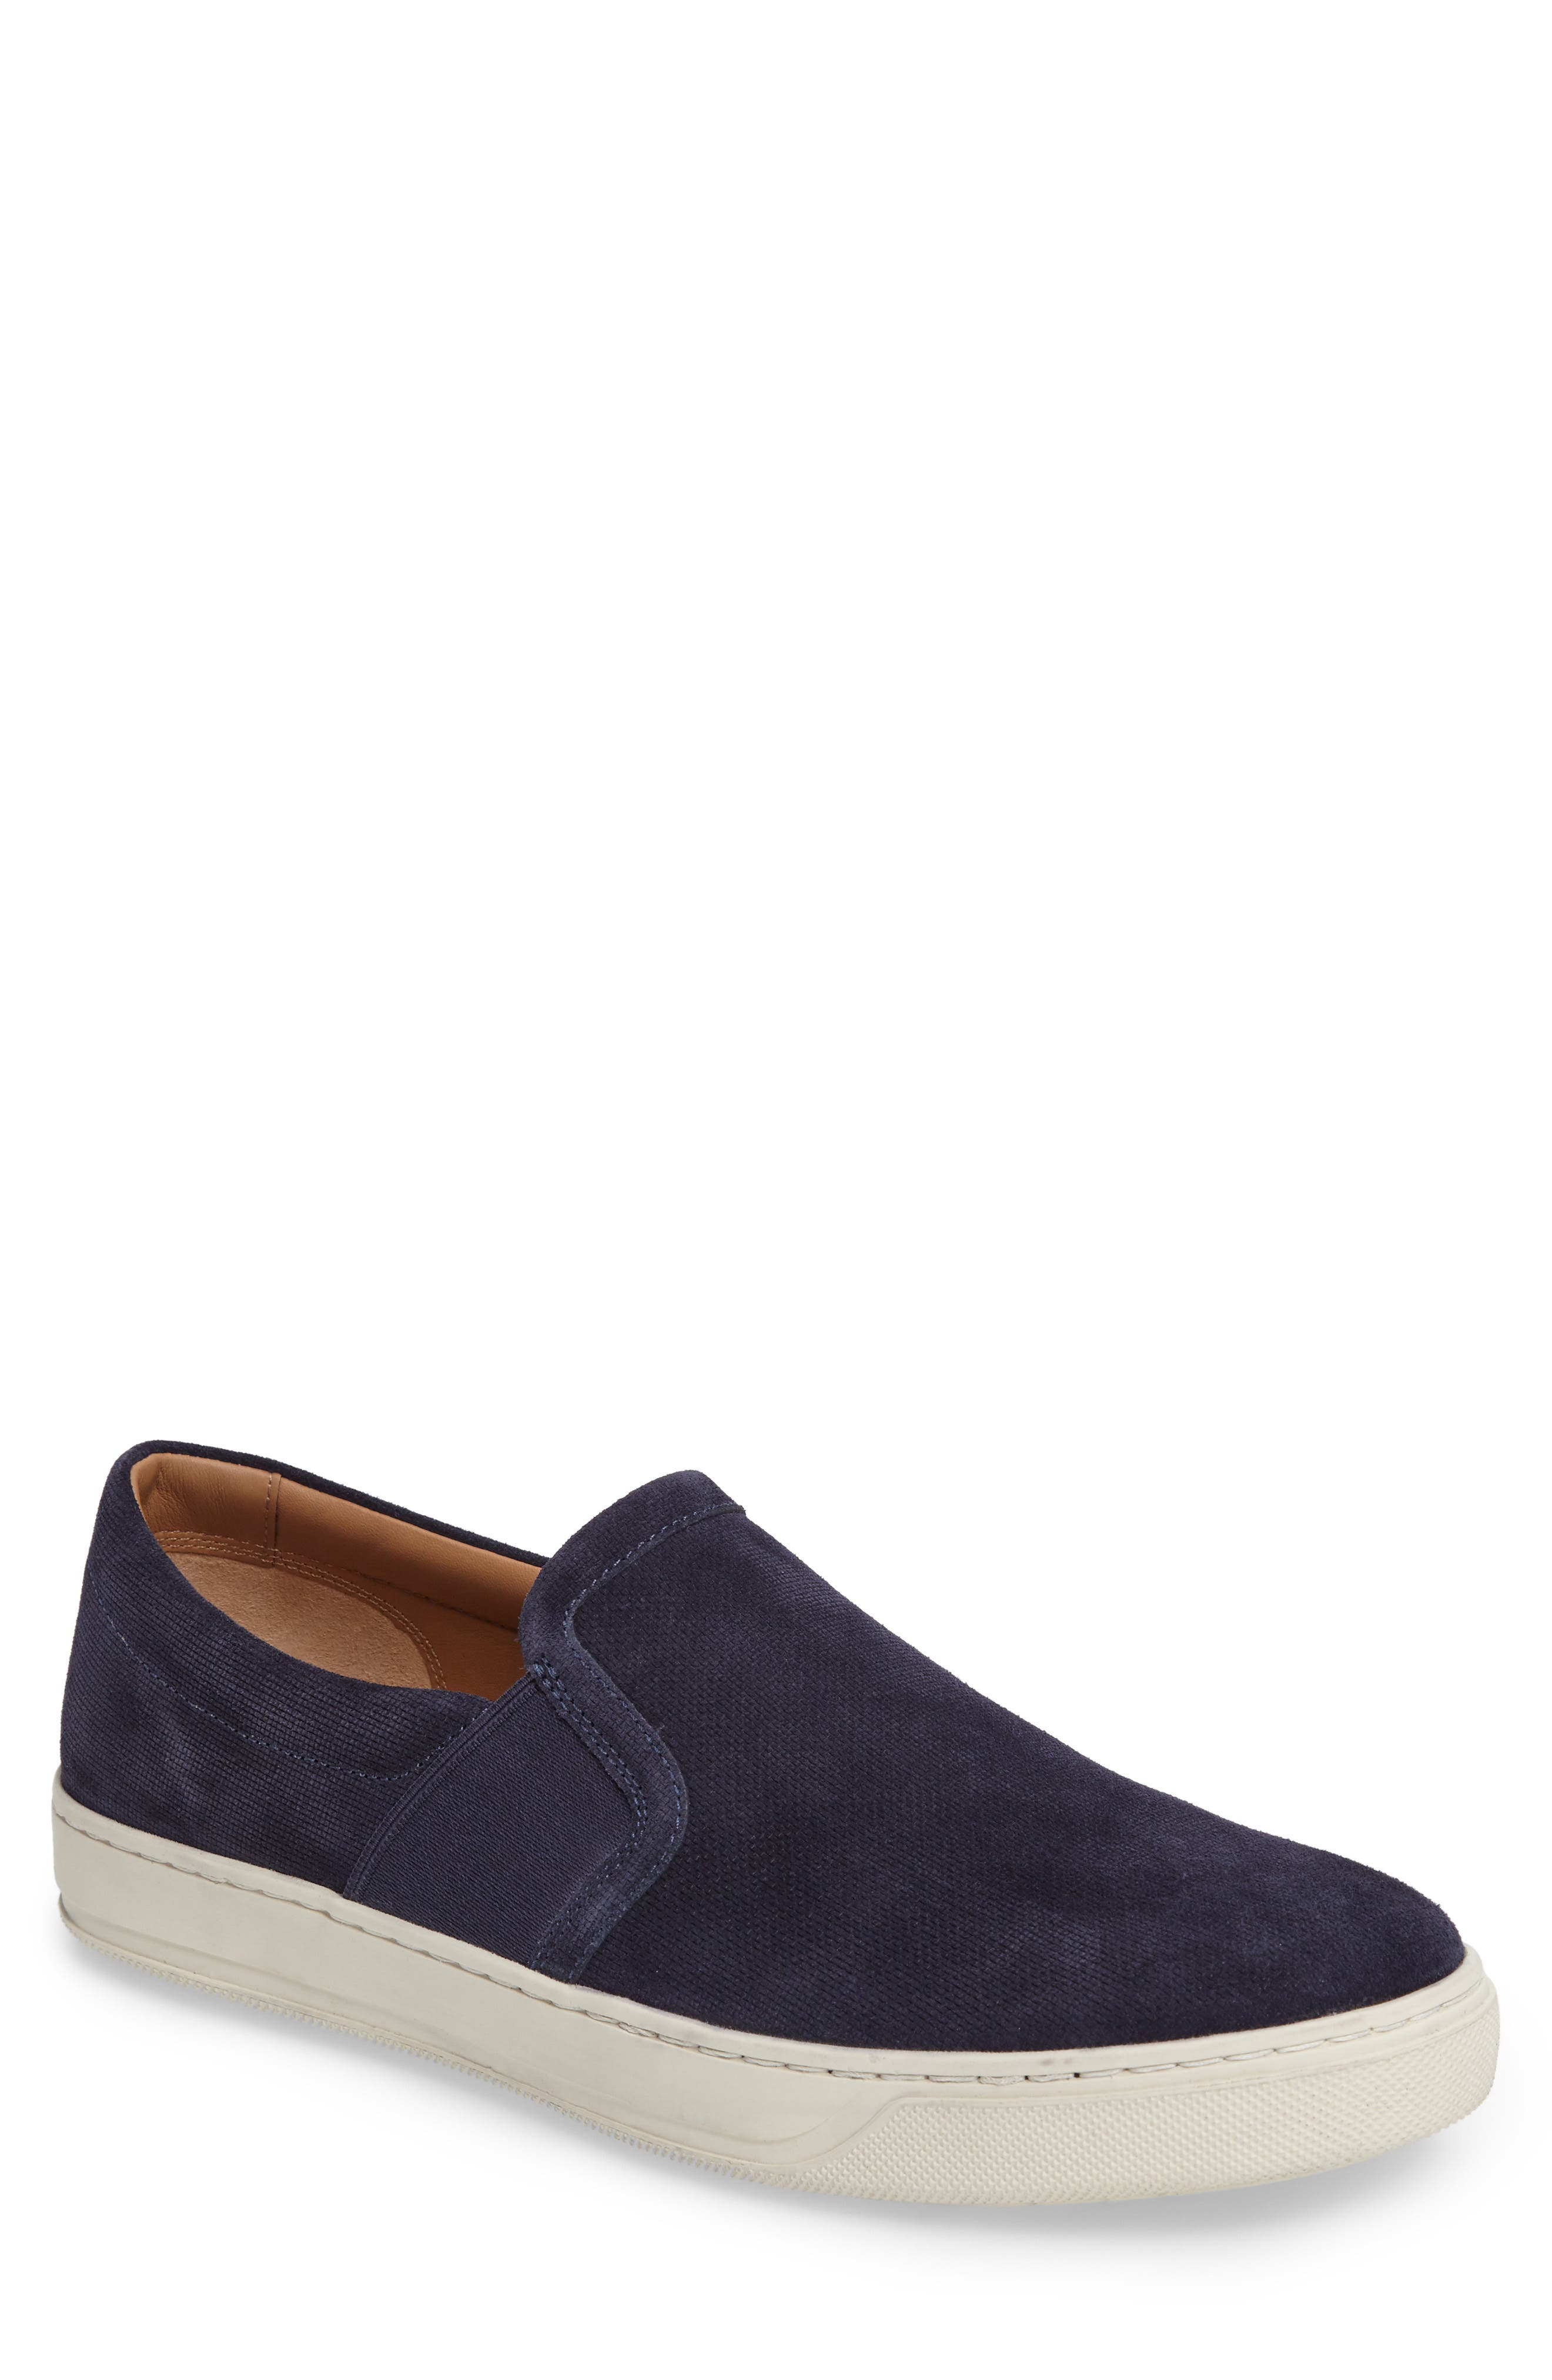 Adler Slip-On,                             Main thumbnail 1, color,                             Coastal Suede